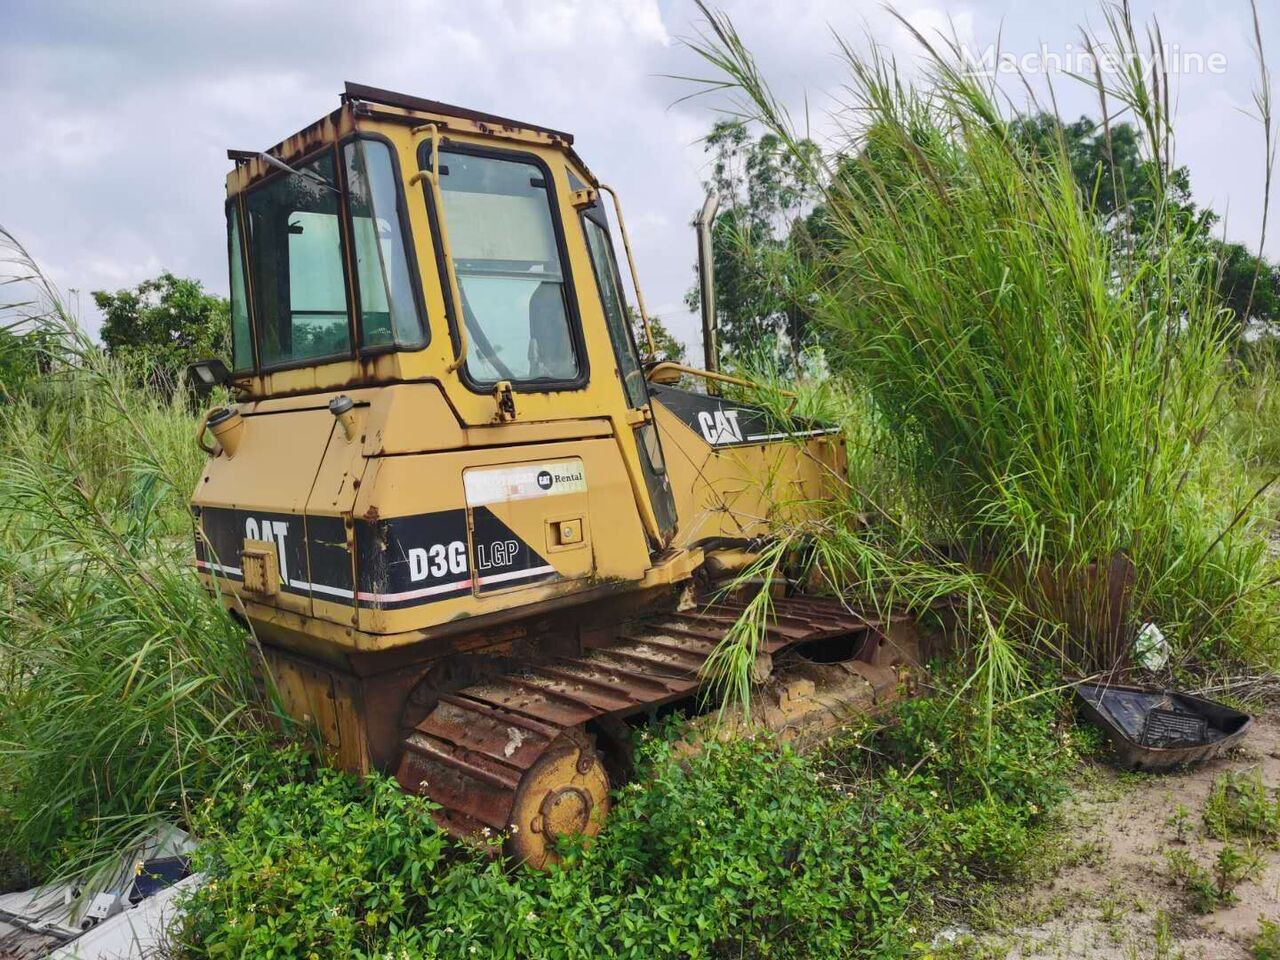 CATERPILLAR D3G bulldozer